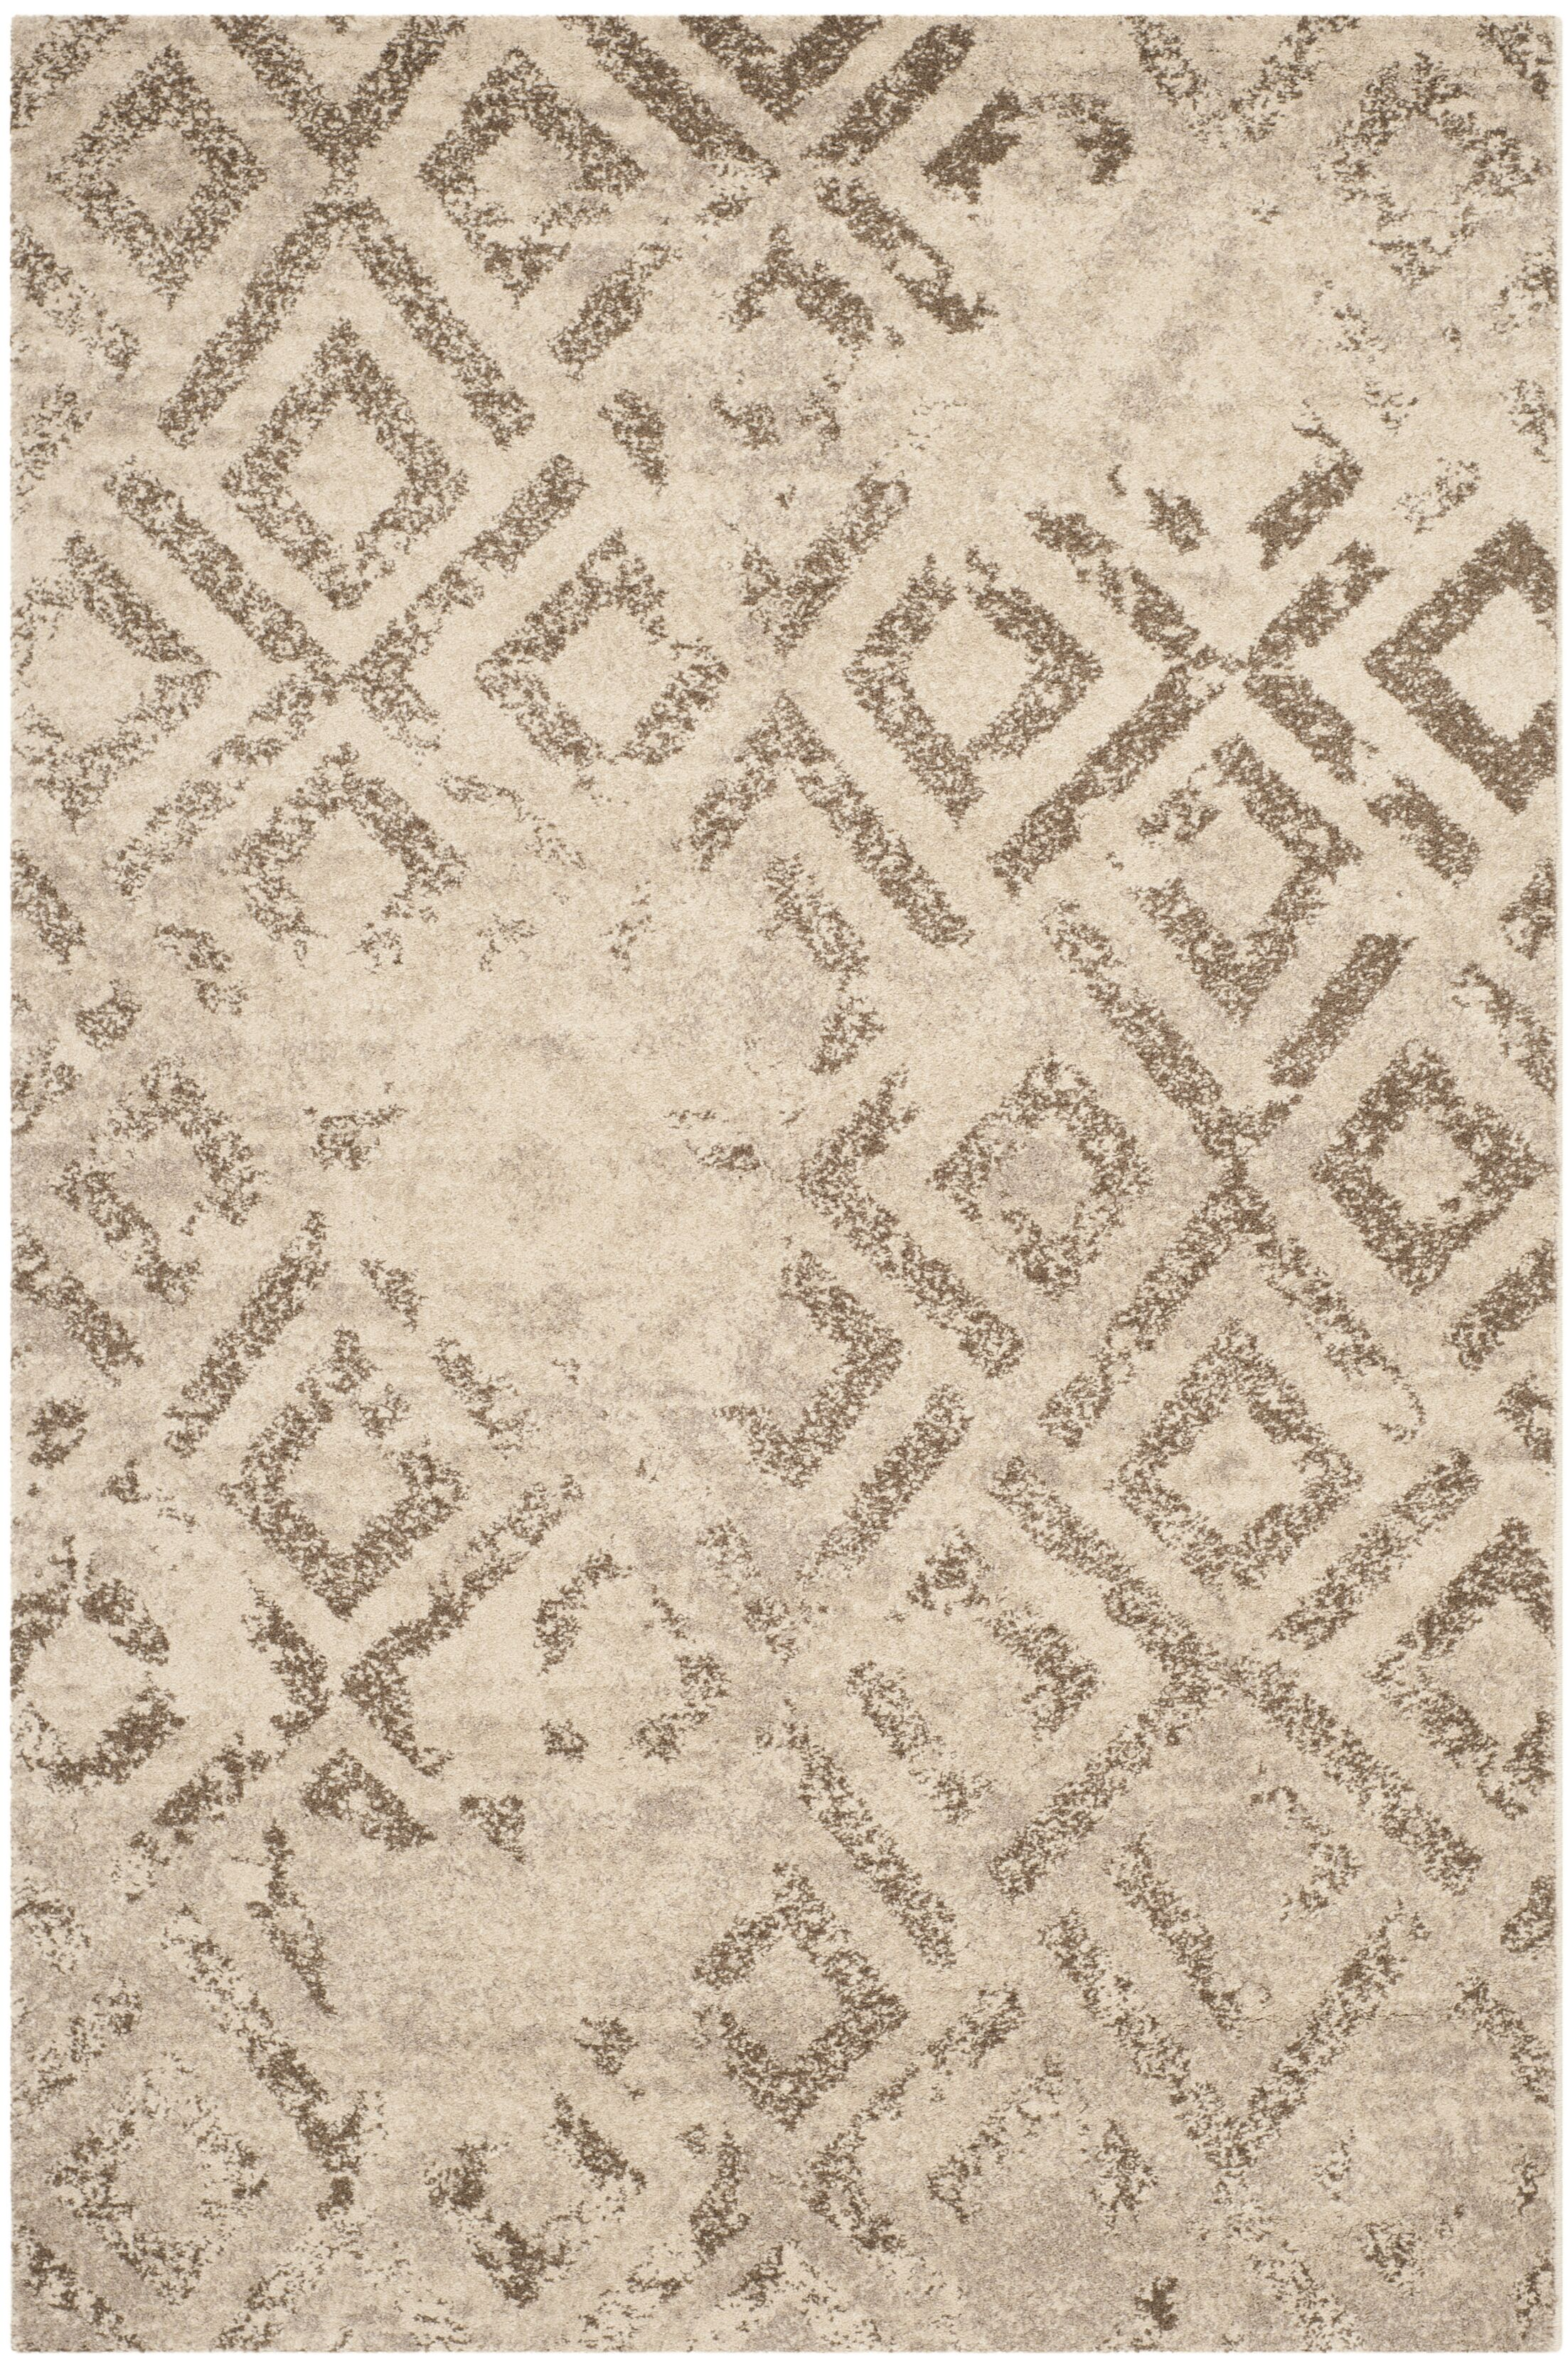 Bennett Ivory/Taupe Area Rug Rug Size: Rectangle 5'1